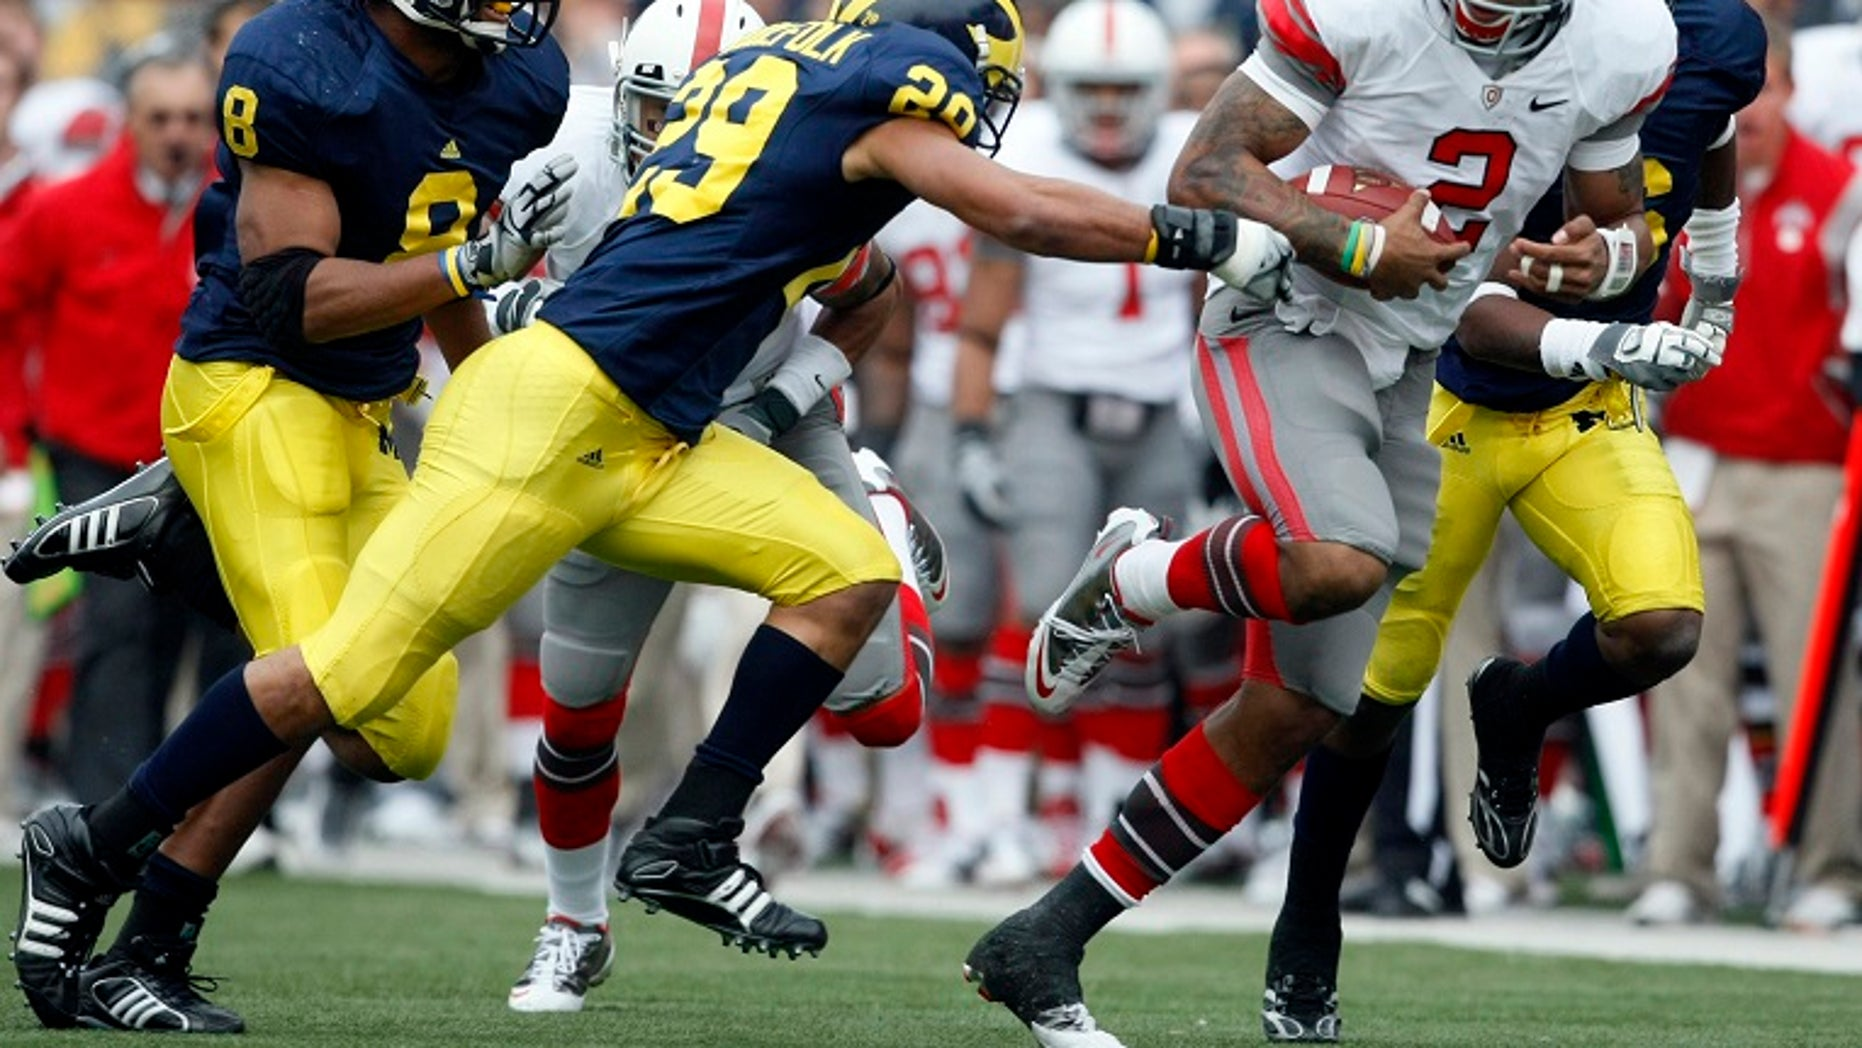 An Ohio man who was severely injured in a car accident in March in Europe is making progress after he was he answered no to liking University of Michigan football team, the Wolverines.